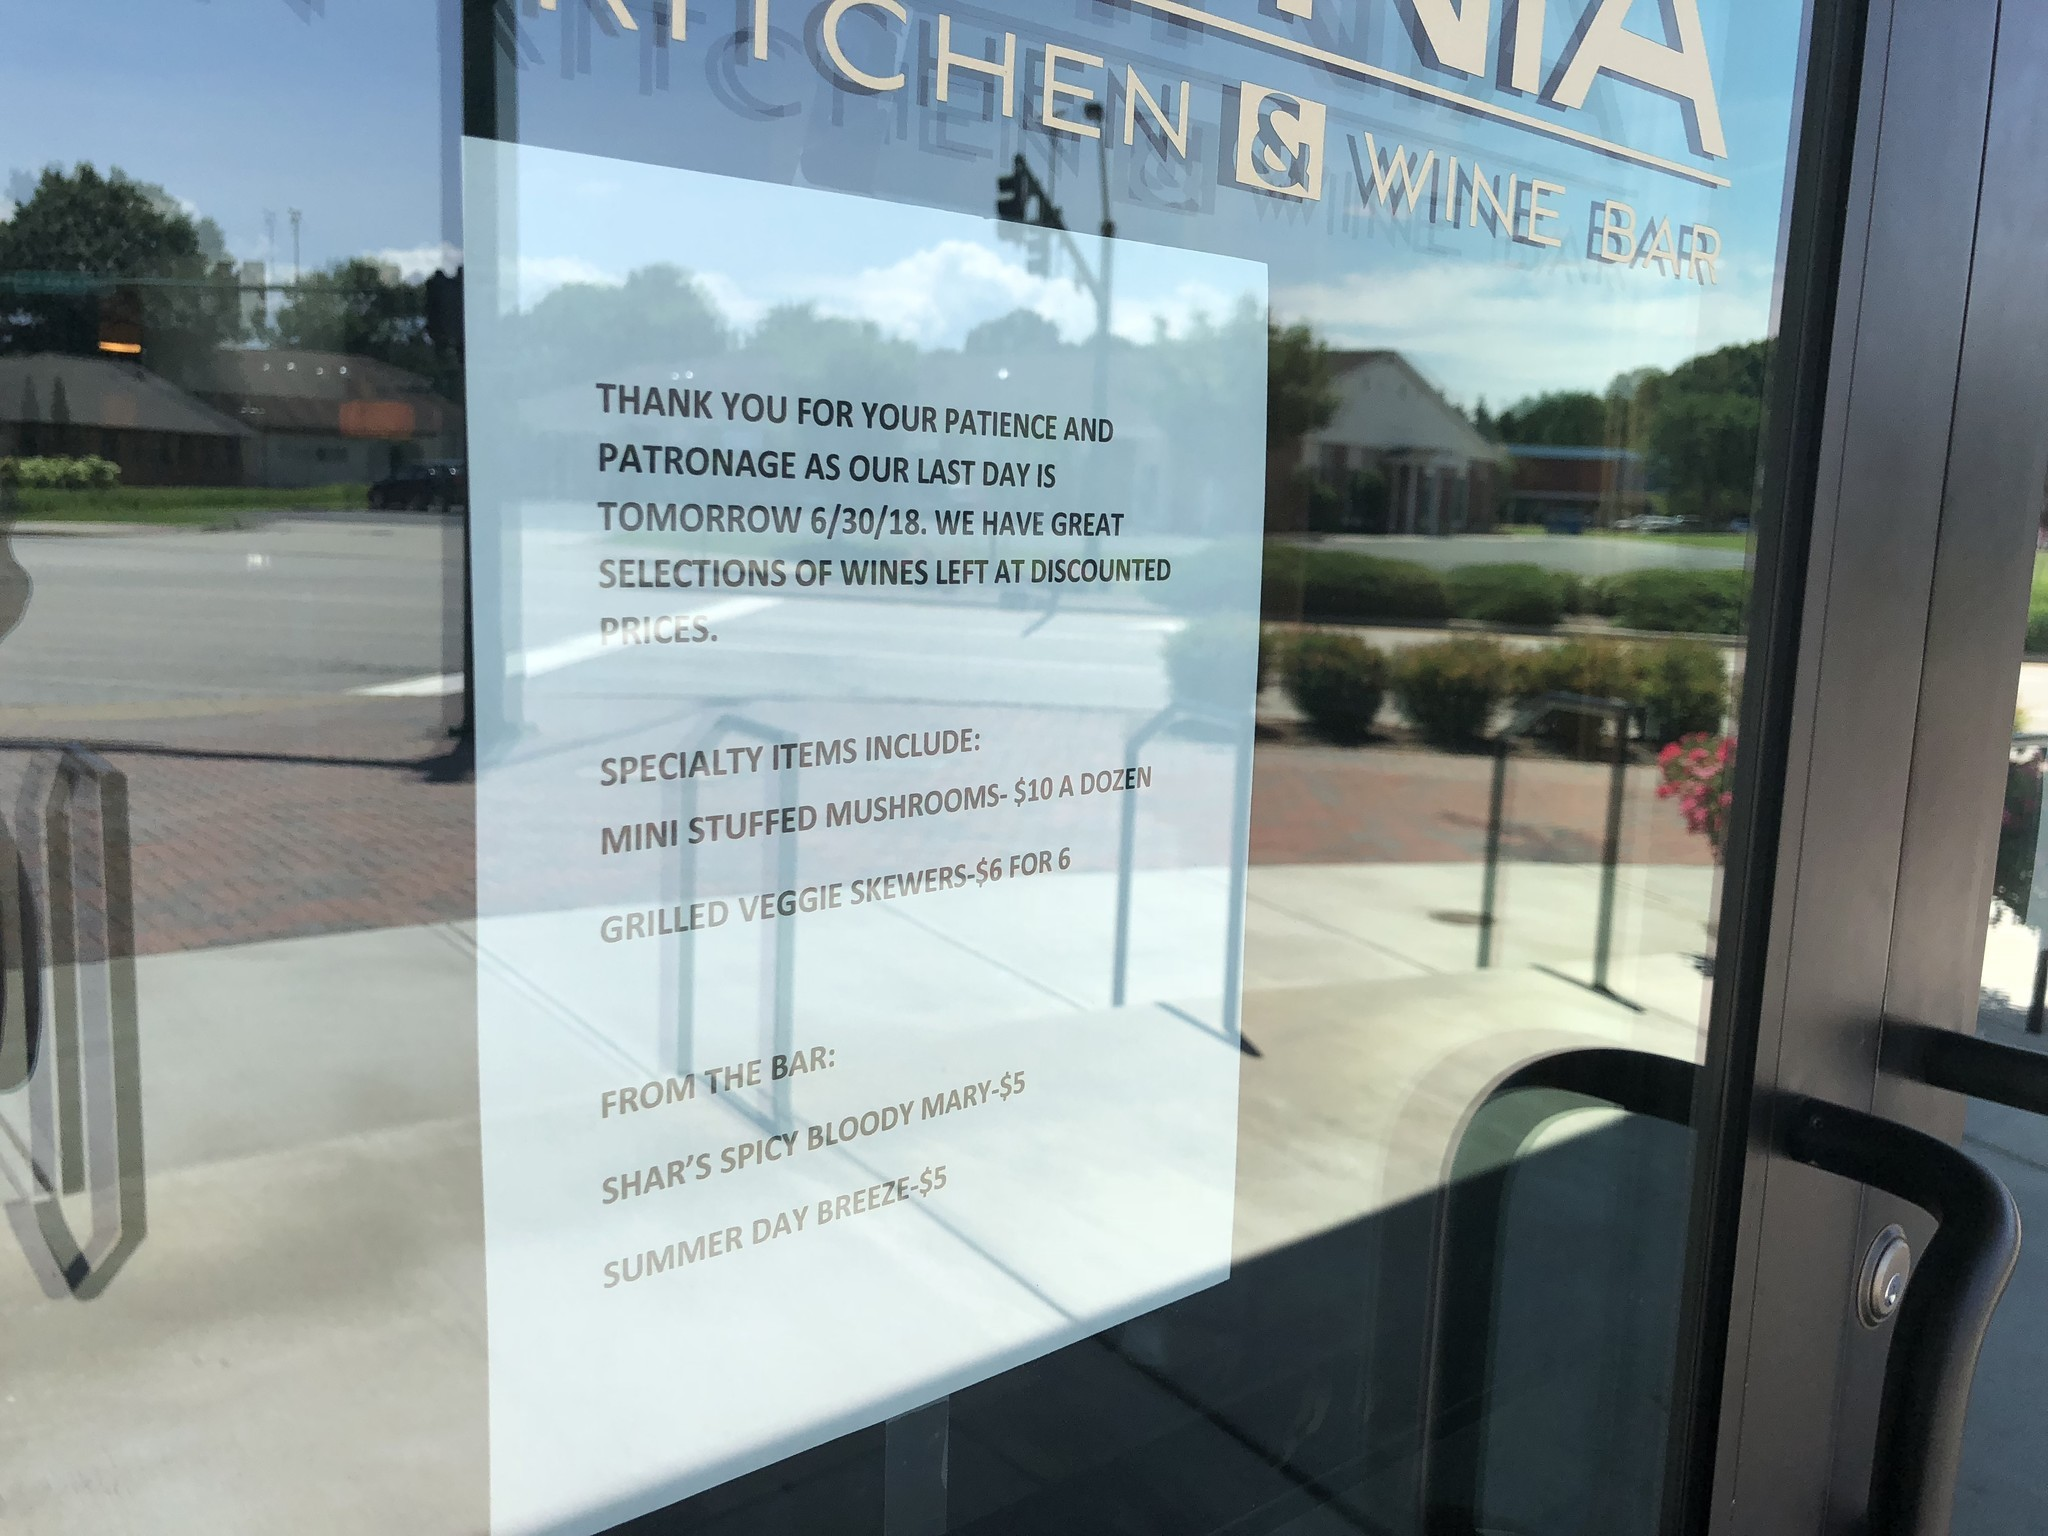 Travinia Restaurant In Newport News City Center Closes Daily Press